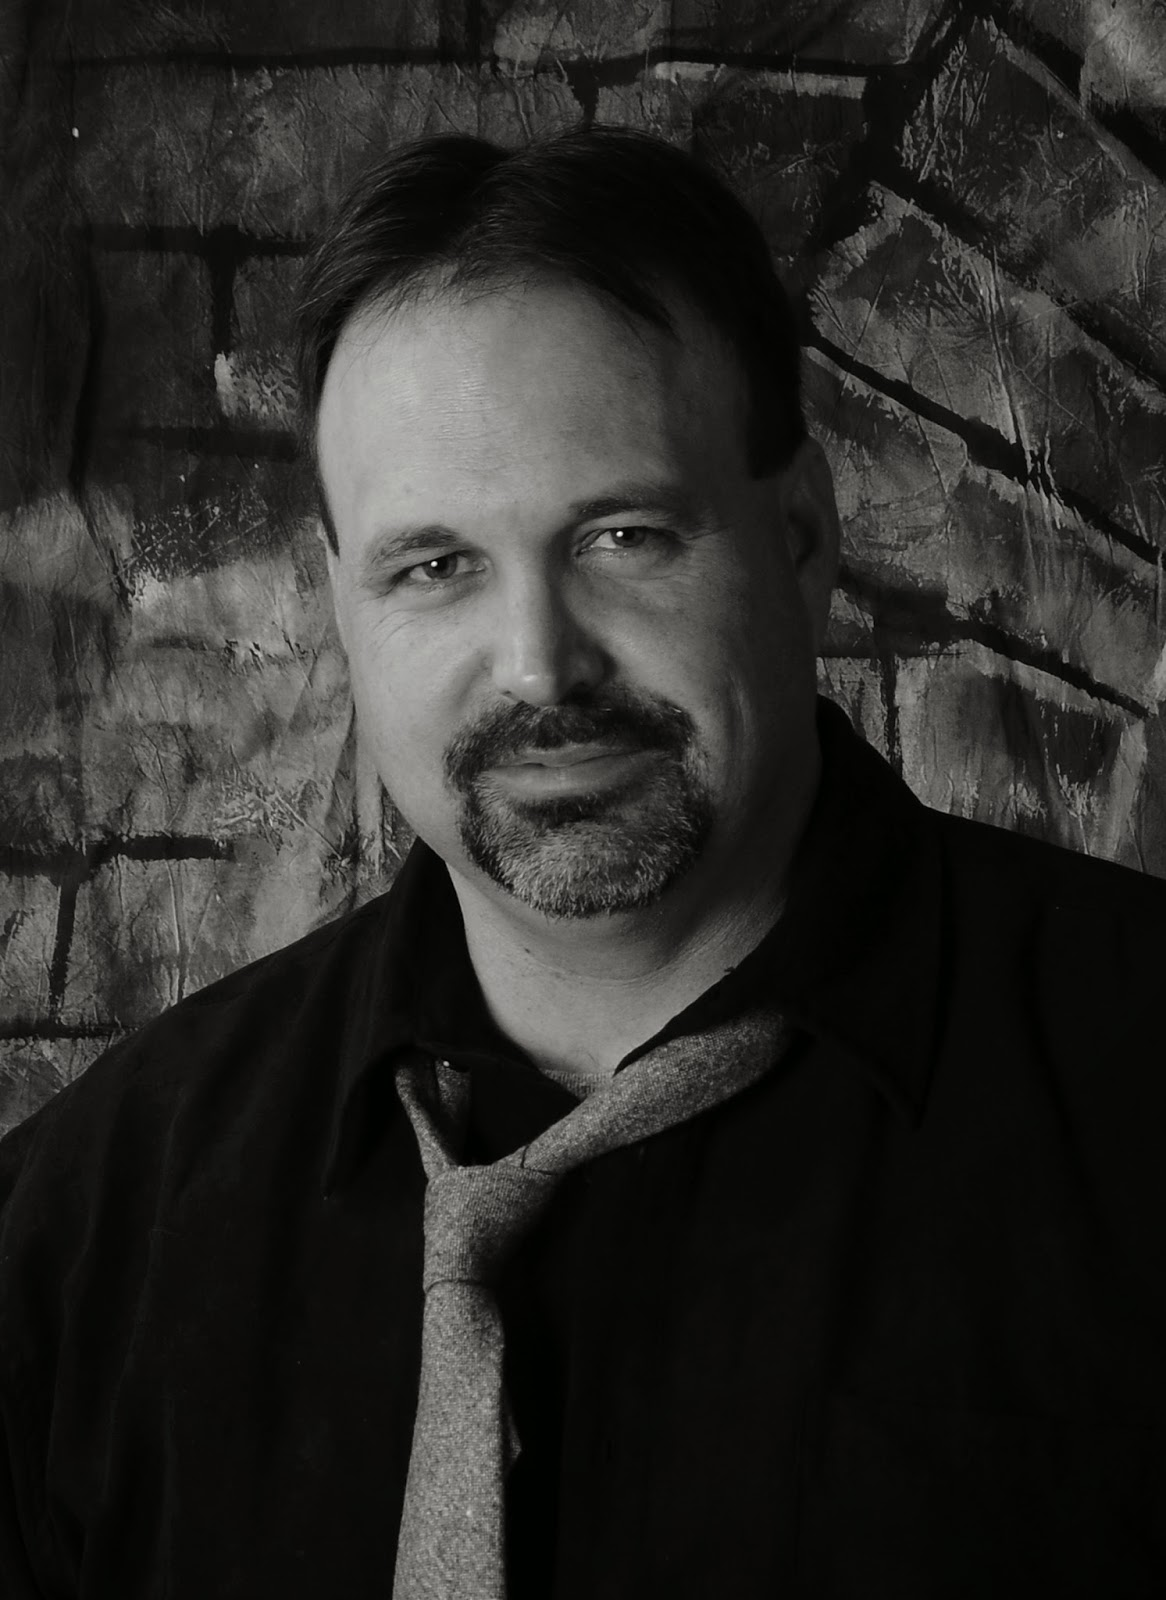 Interview with fantasy author Davidson Haworth